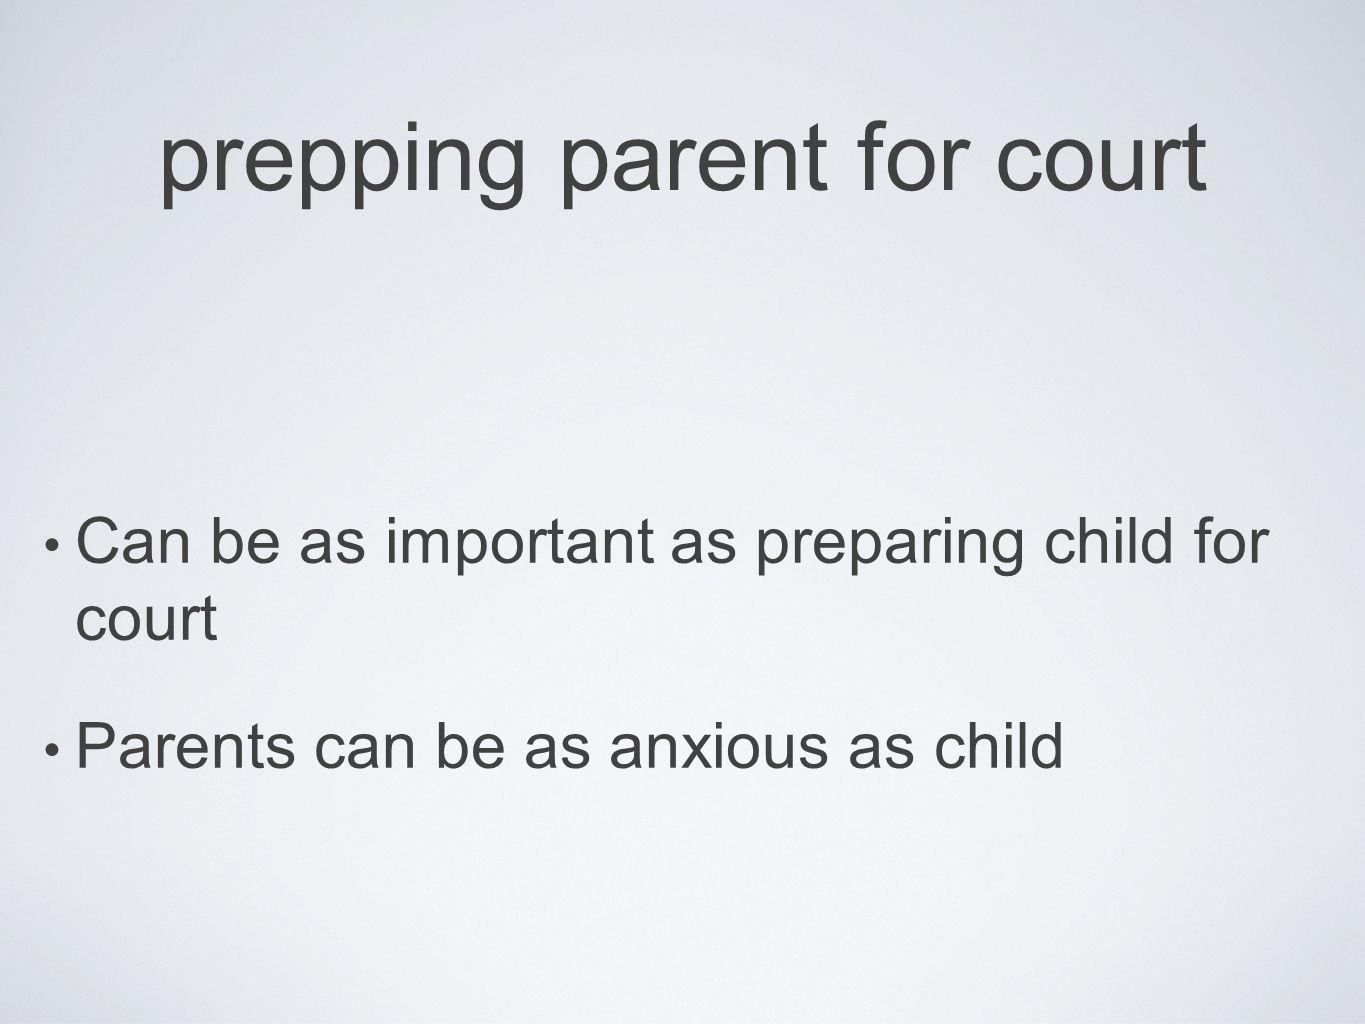 prepping parent for court